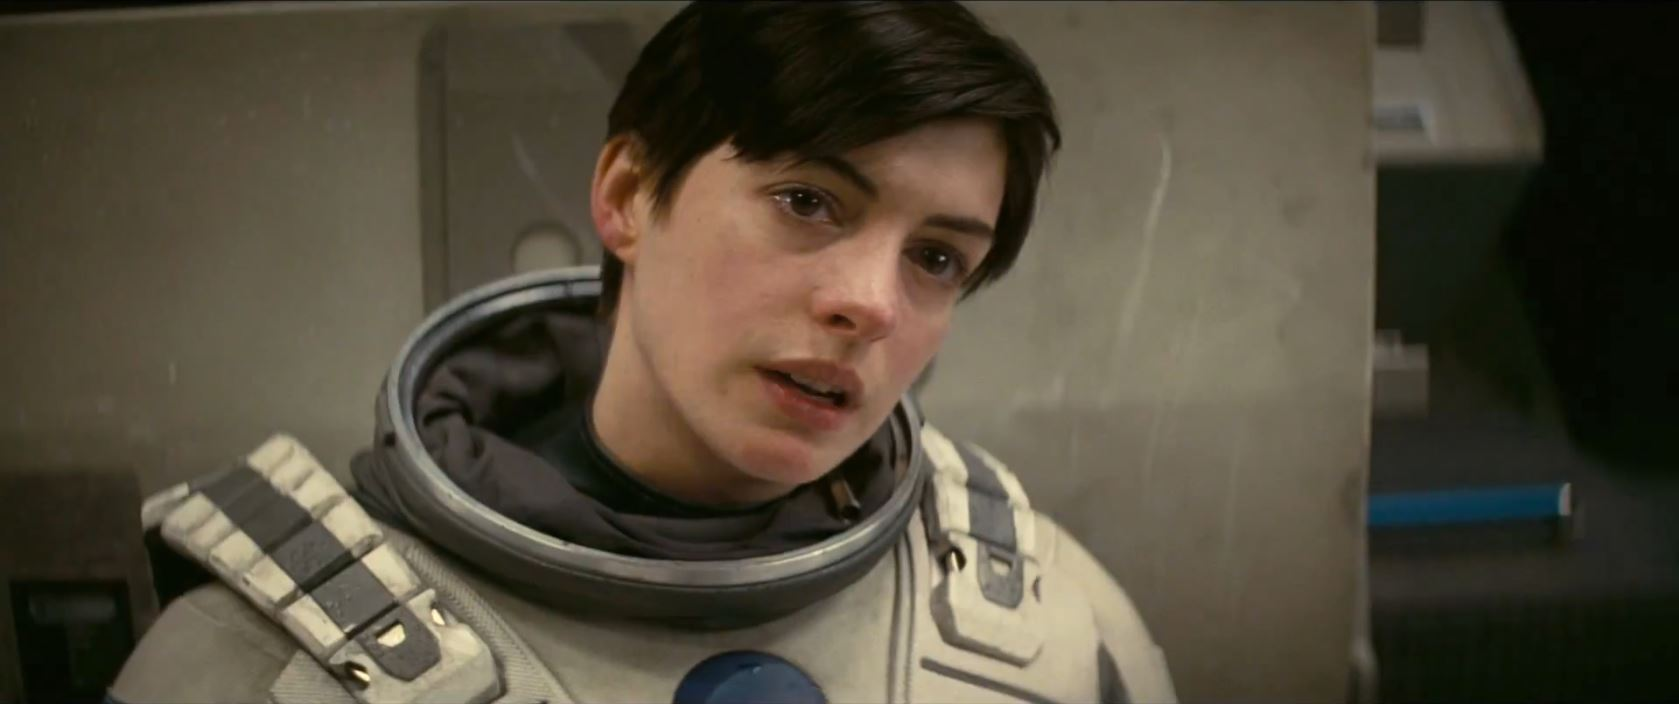 Interstellar trailer - Anne Hathaway